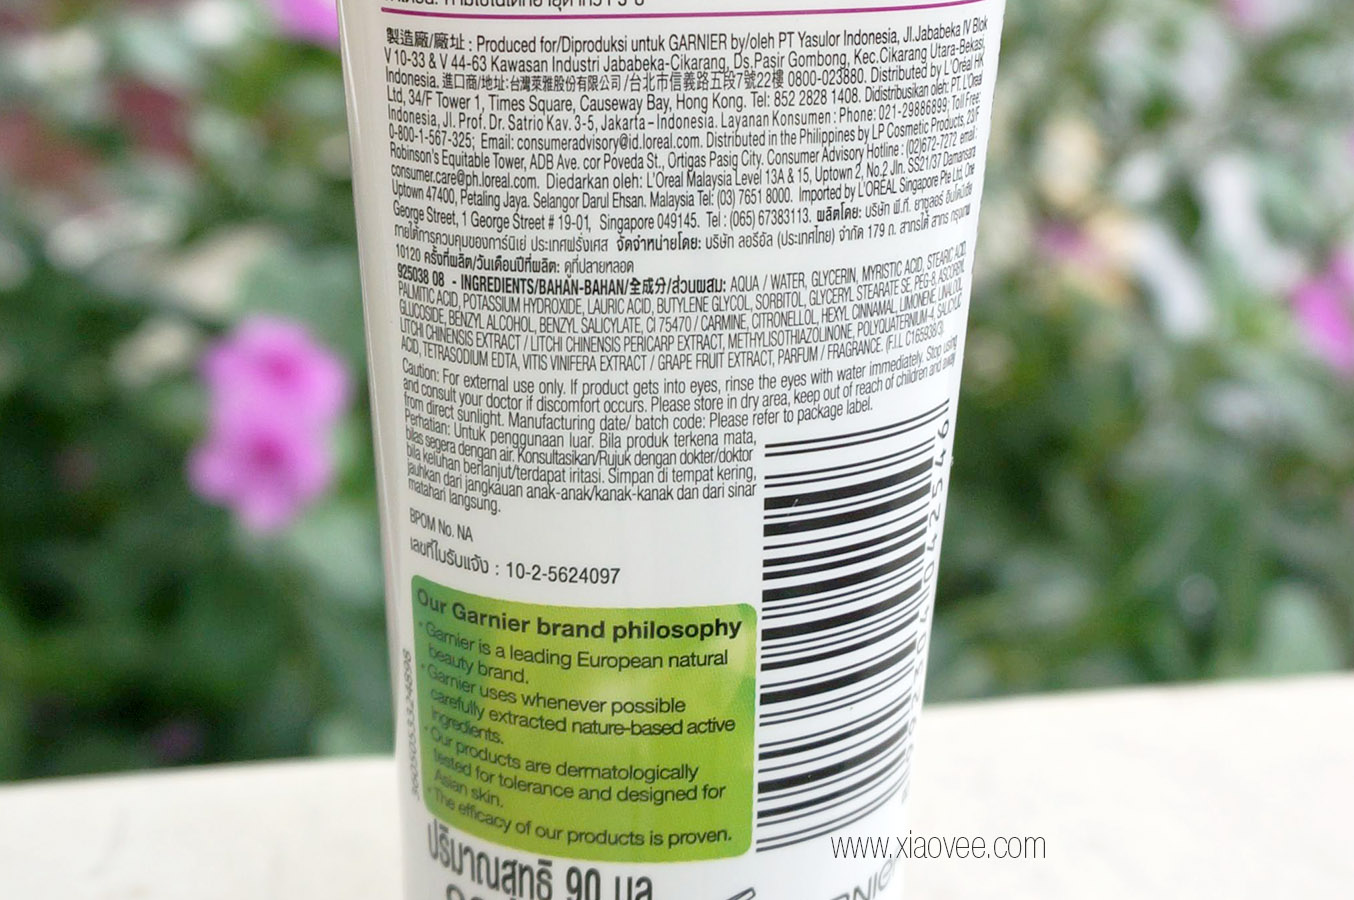 Garnier Duo Clean review